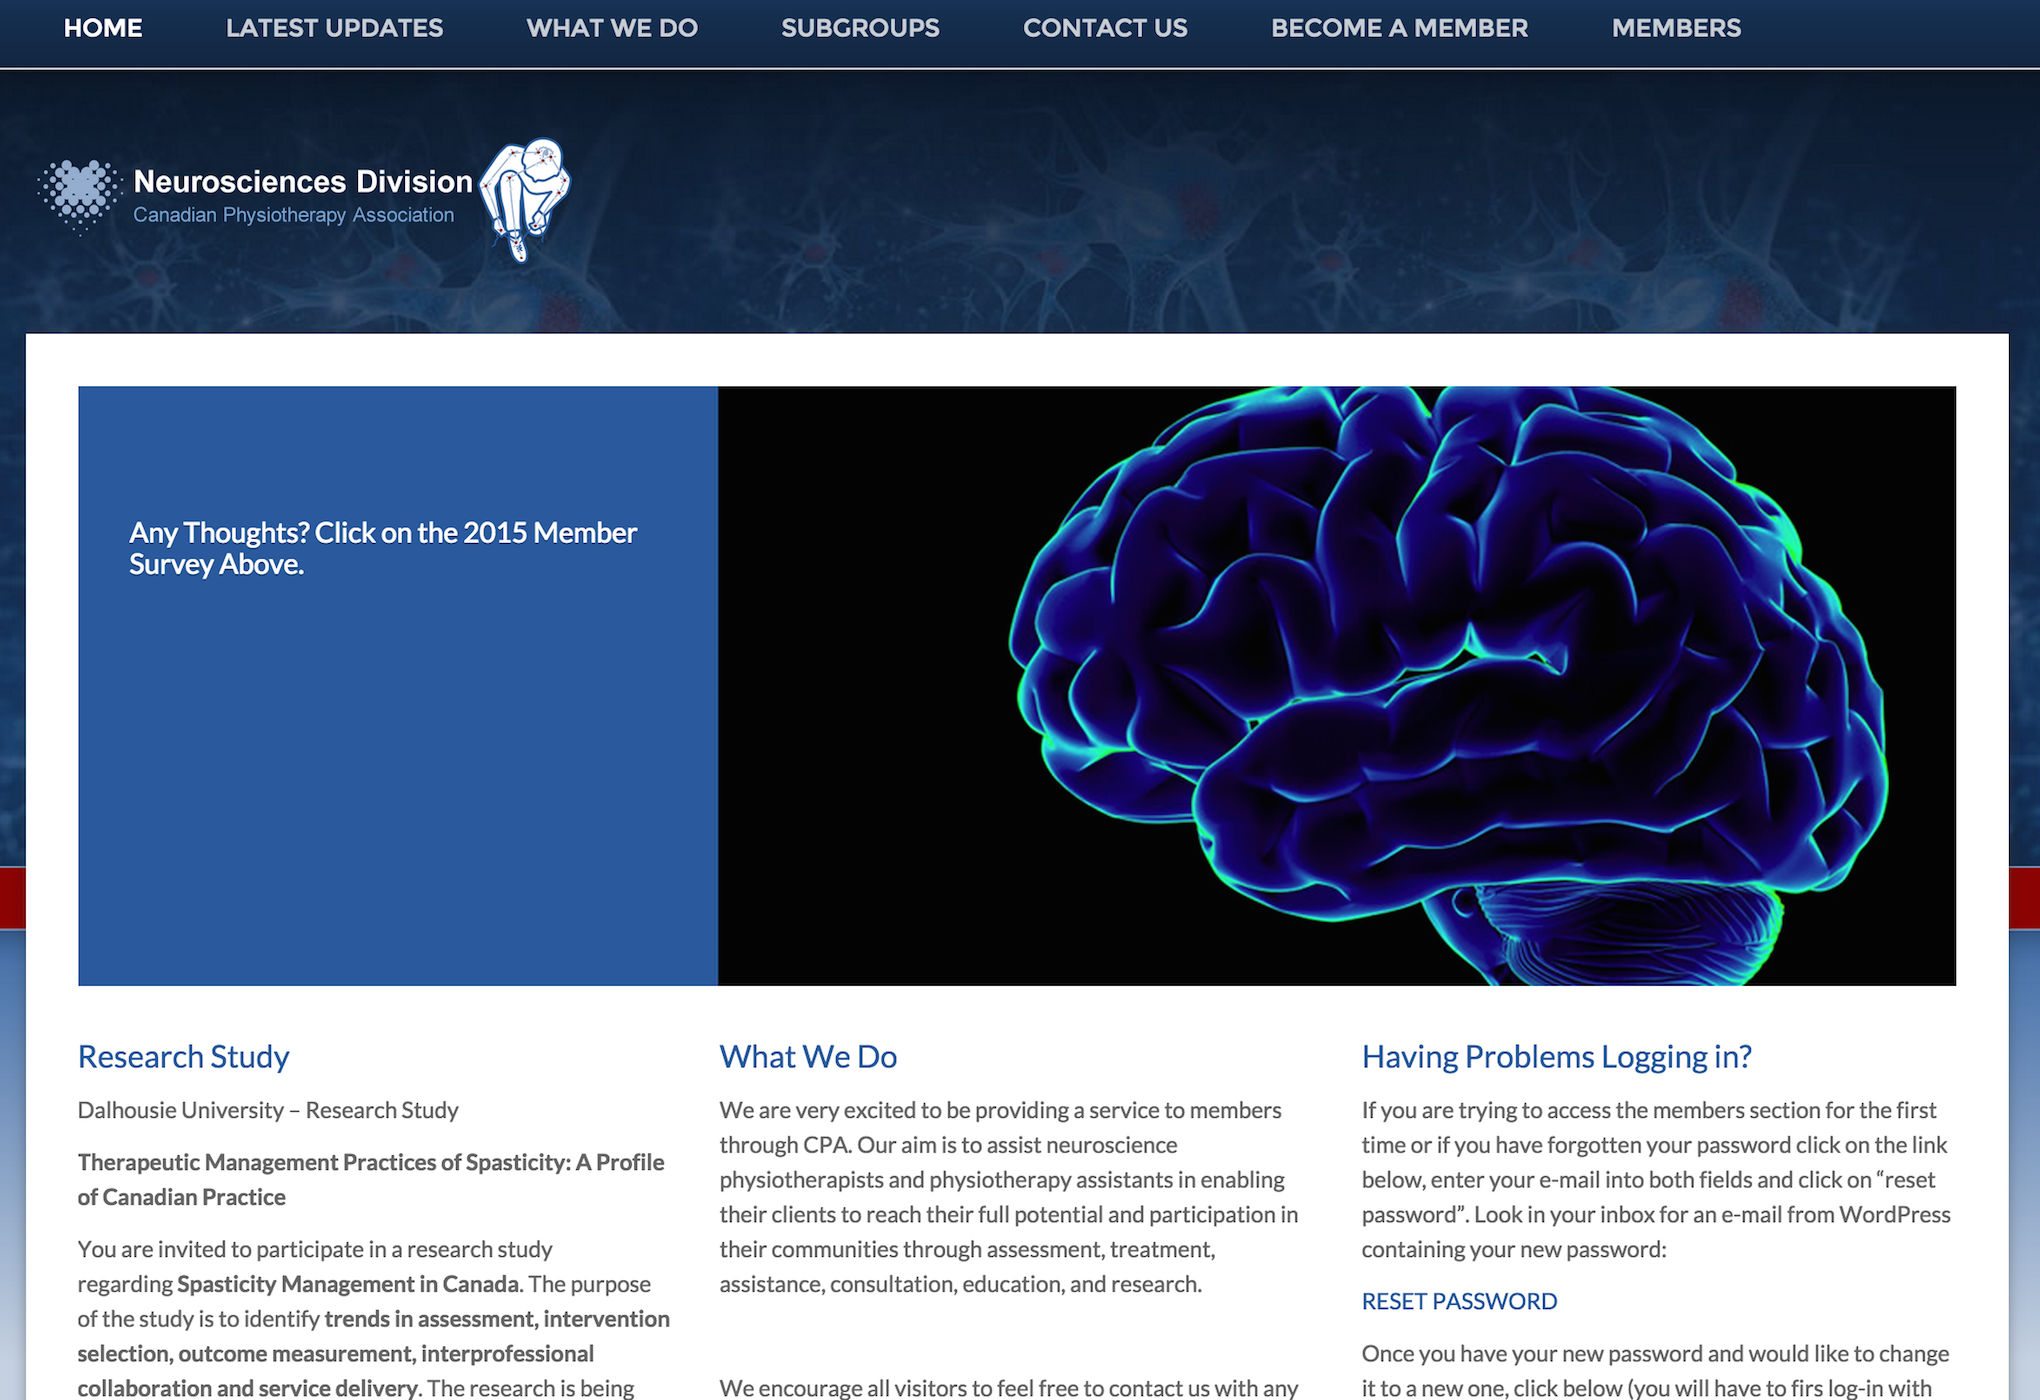 Neurosciences Division of the Canadian Physiotherapy Association